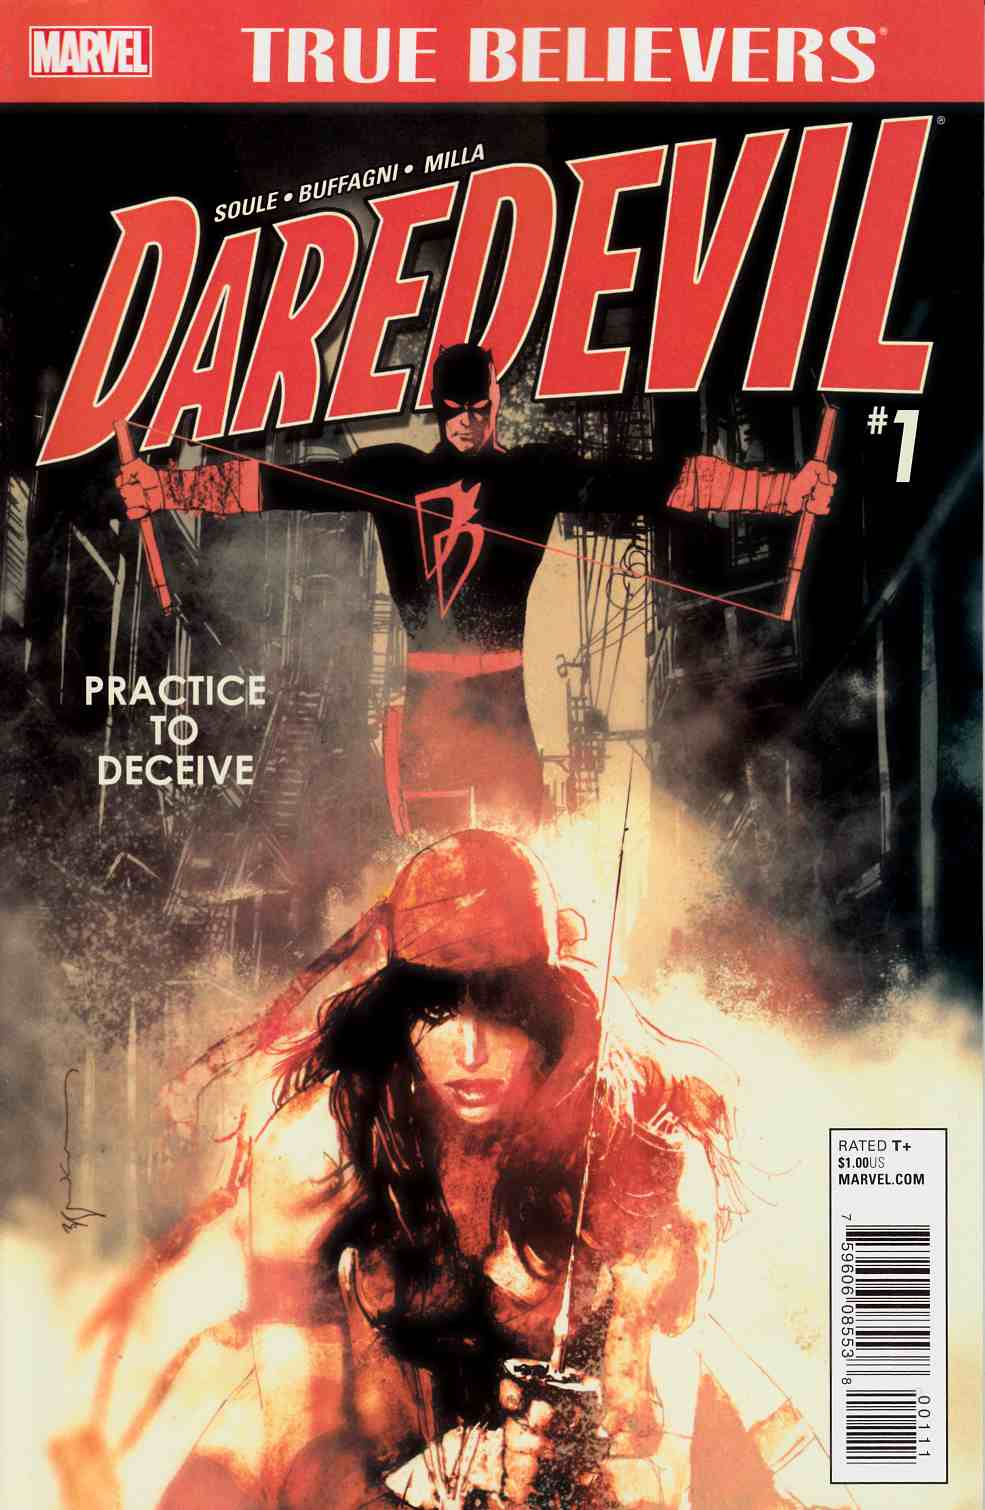 True Believers Daredevil Practice To Deceive #1 [Marvel Comic] LARGE